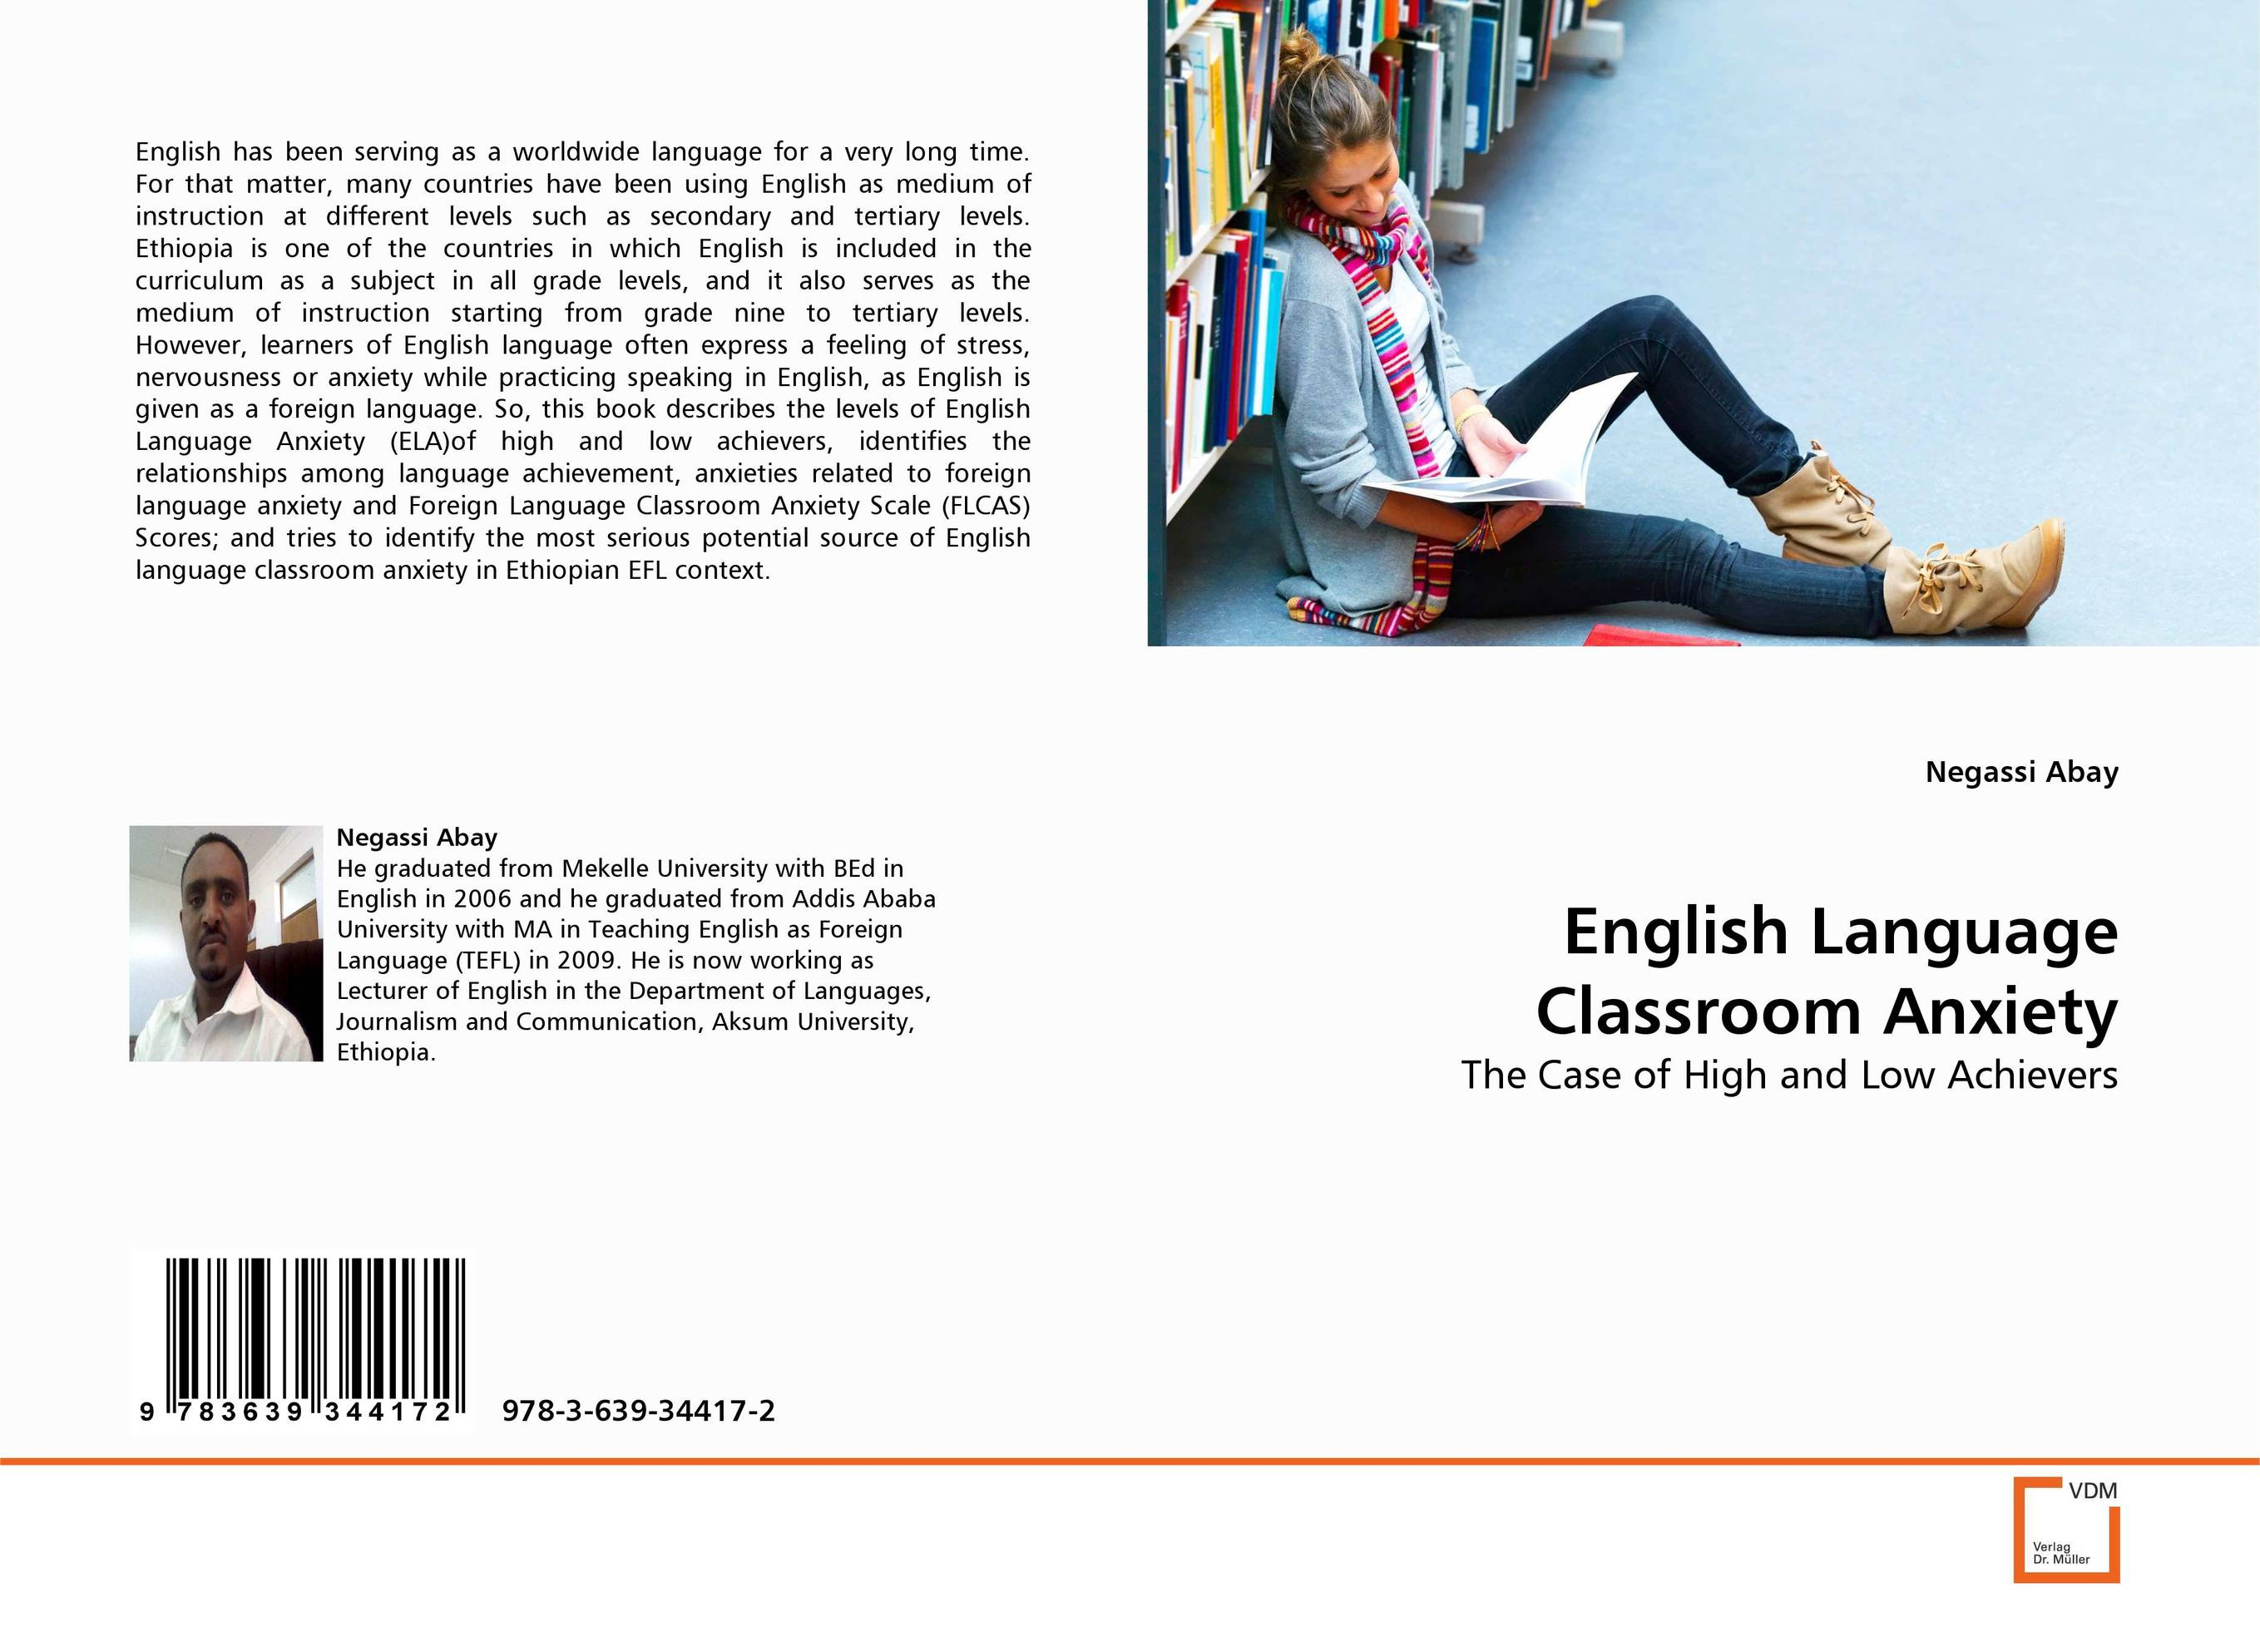 English Language Classroom Anxiety